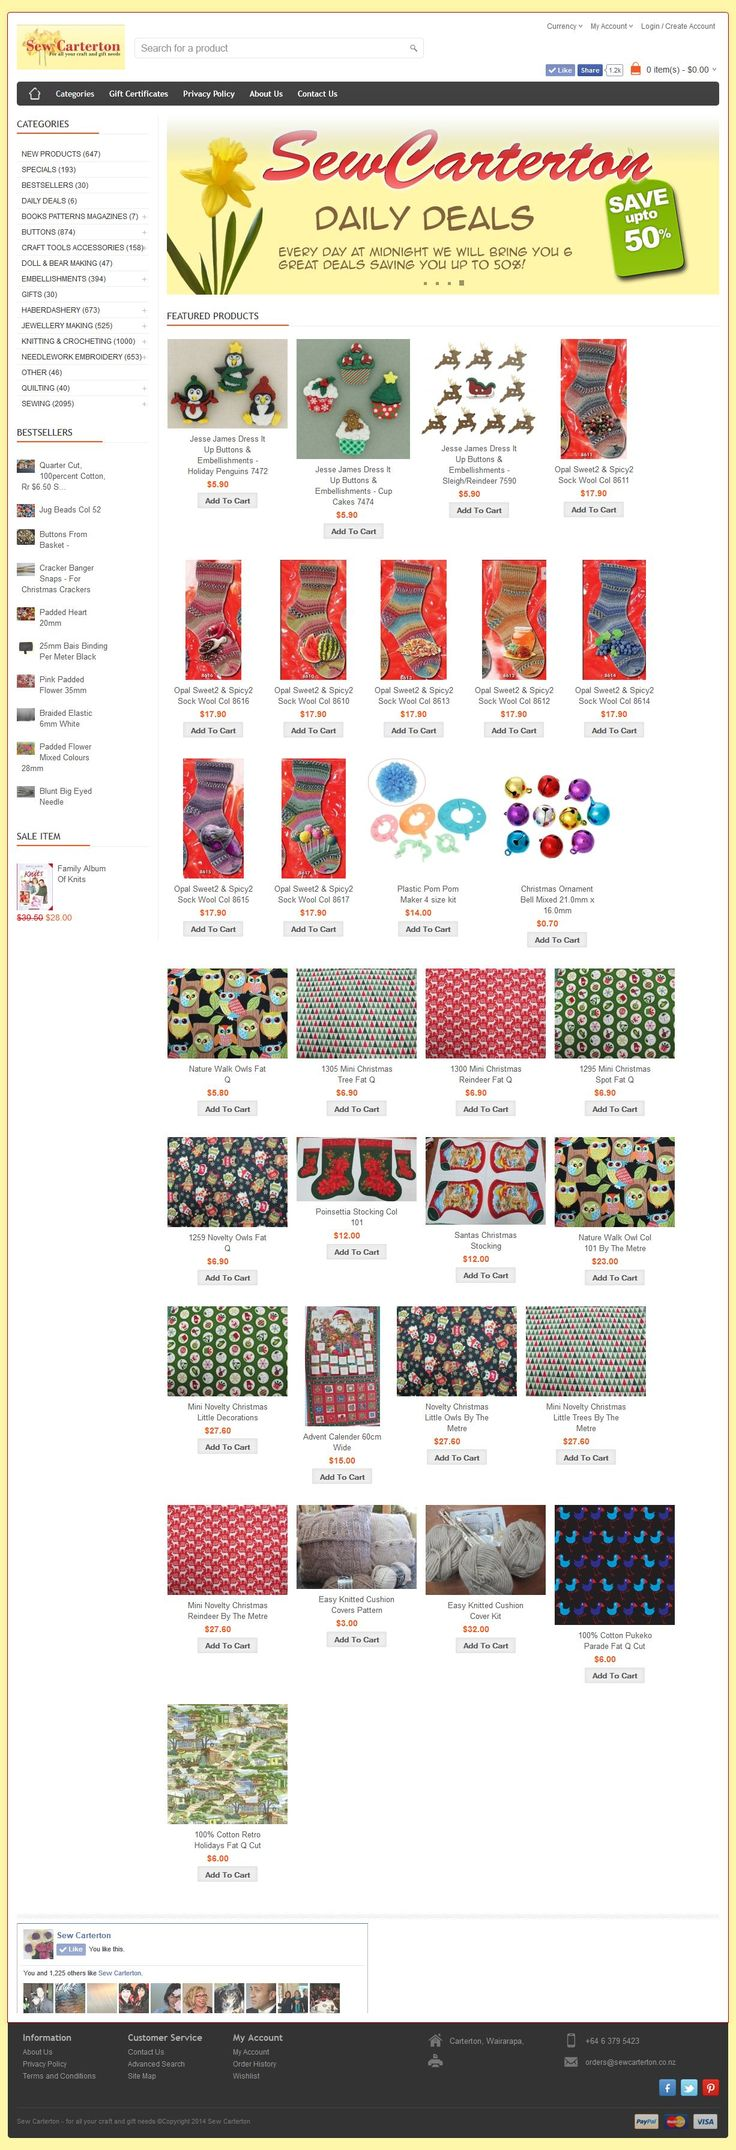 Sew Carterton is a craft, sewing, haberdashery and art business based in Carterton The website is a huge collection of products in an online catalogue, allowing ecommerce purchasing online. www.sewcarterton.co.nz